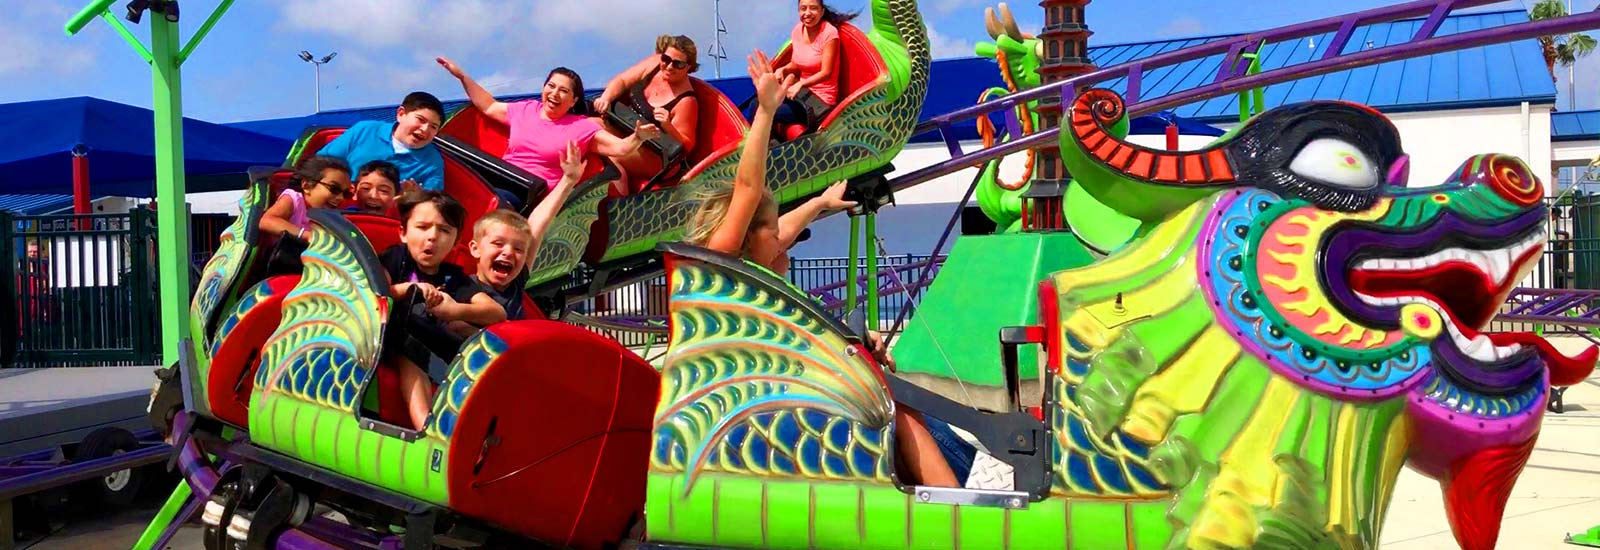 Ride the Dragon Coaster only at the World Famous In The Game Corpus Christi